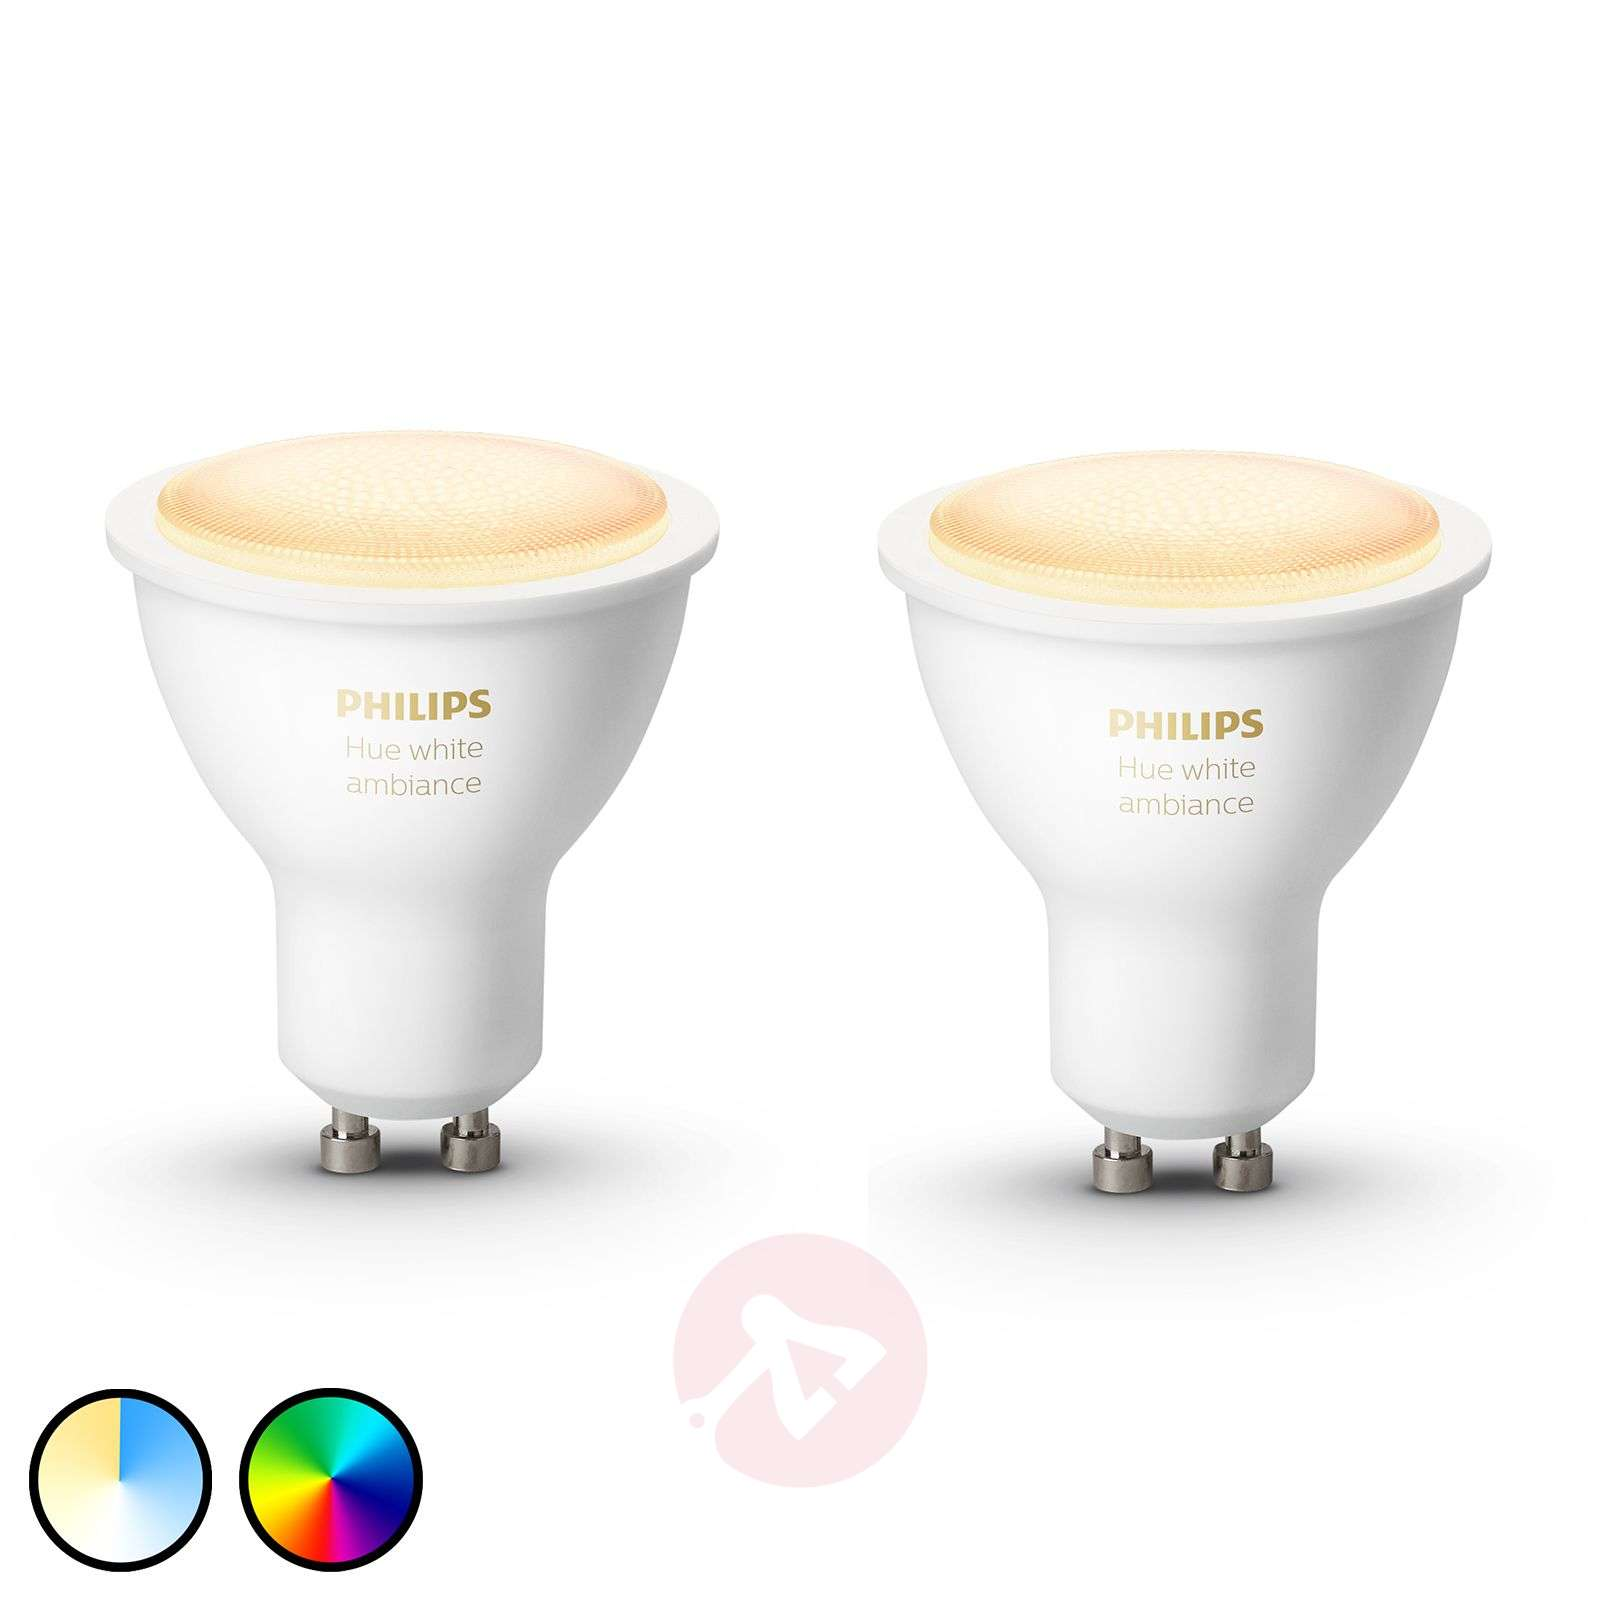 Philips Hue White Ambiance 5 W GU10 LED, set van 2-7534132-01